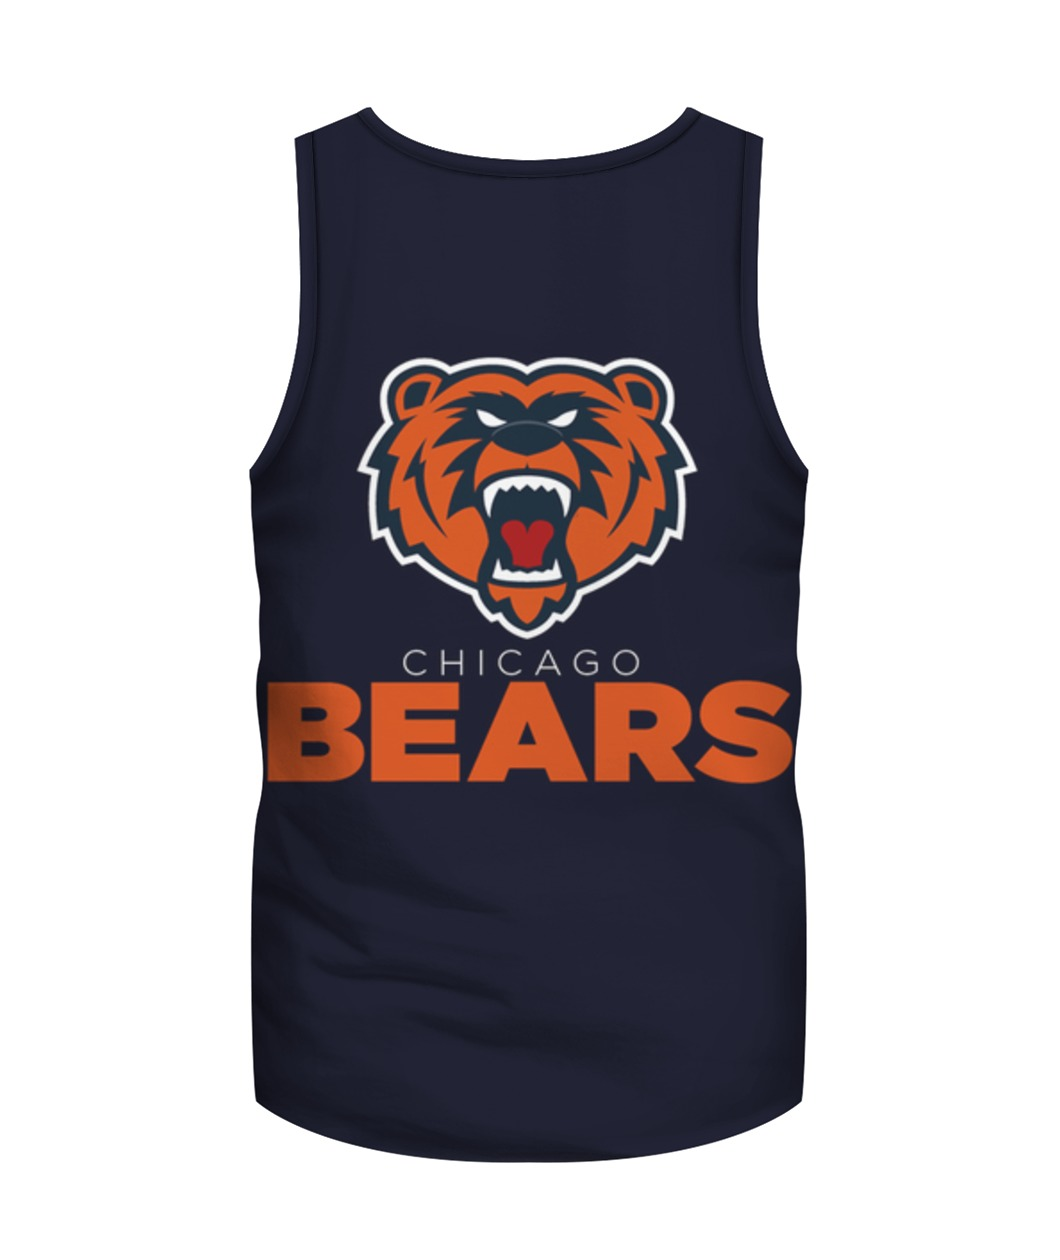 Chicago bears mascot all over print tank top - back